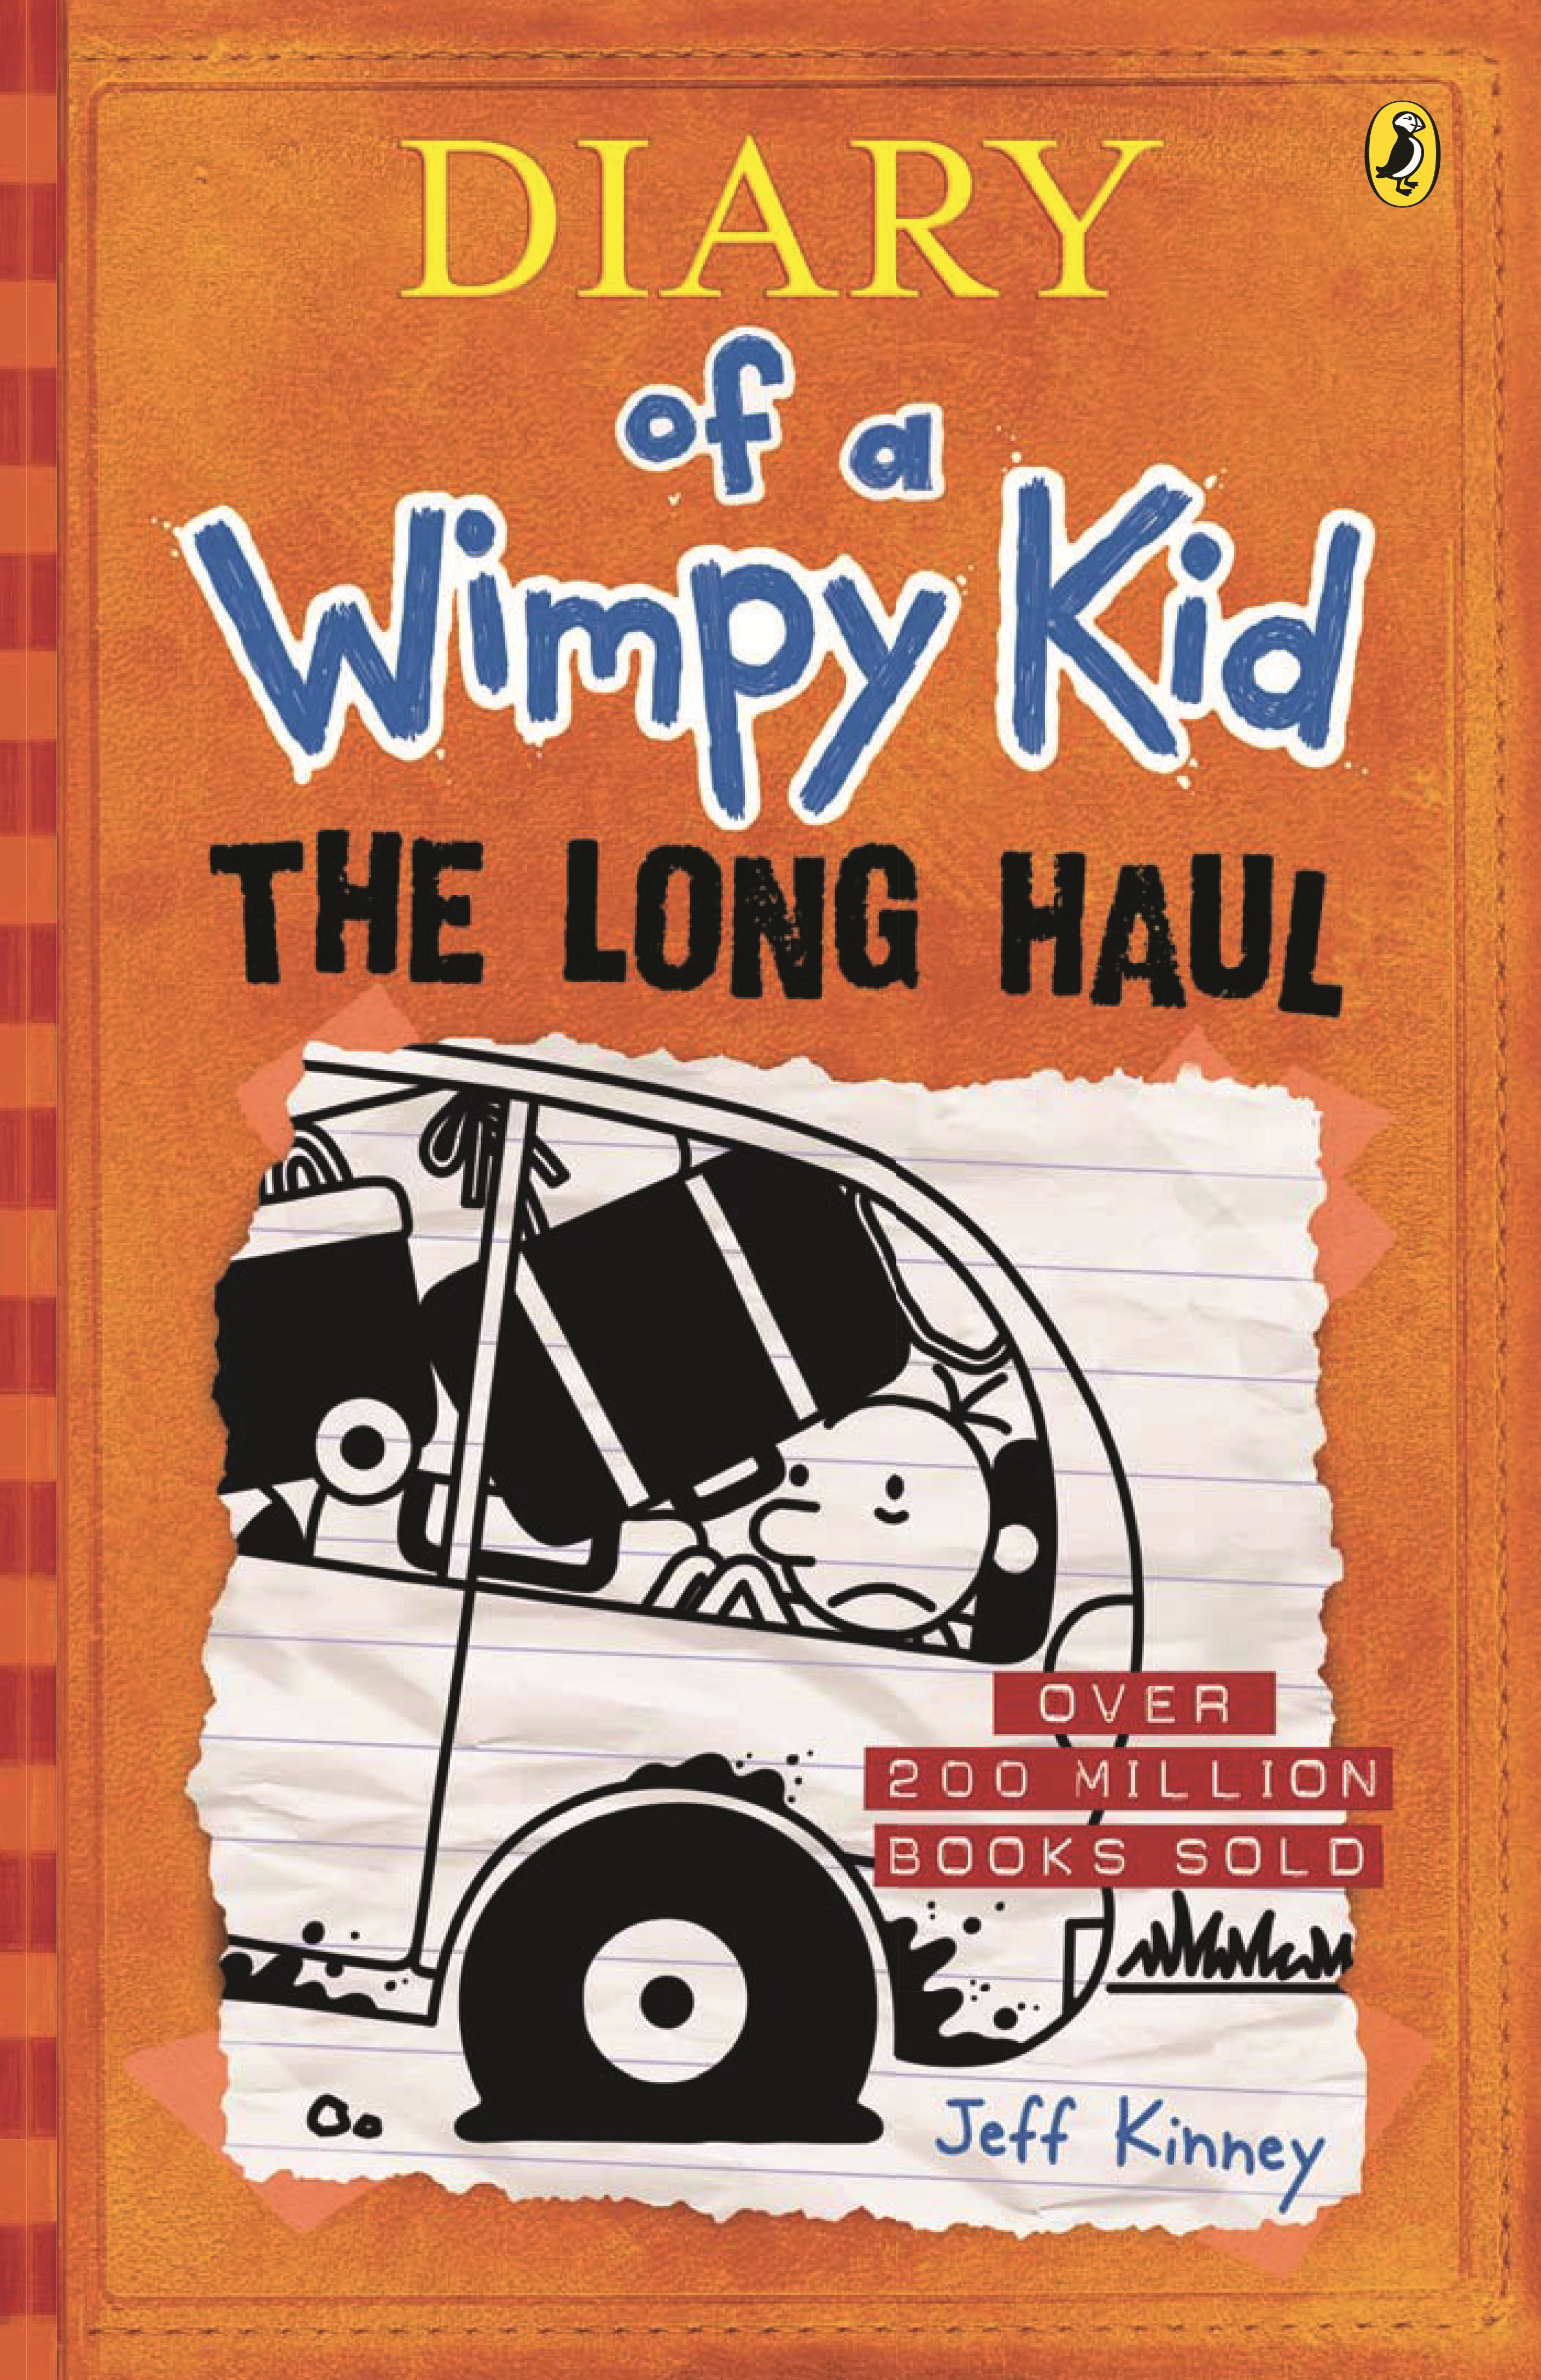 Image result for Diary of the Wimpy Kid the long haul